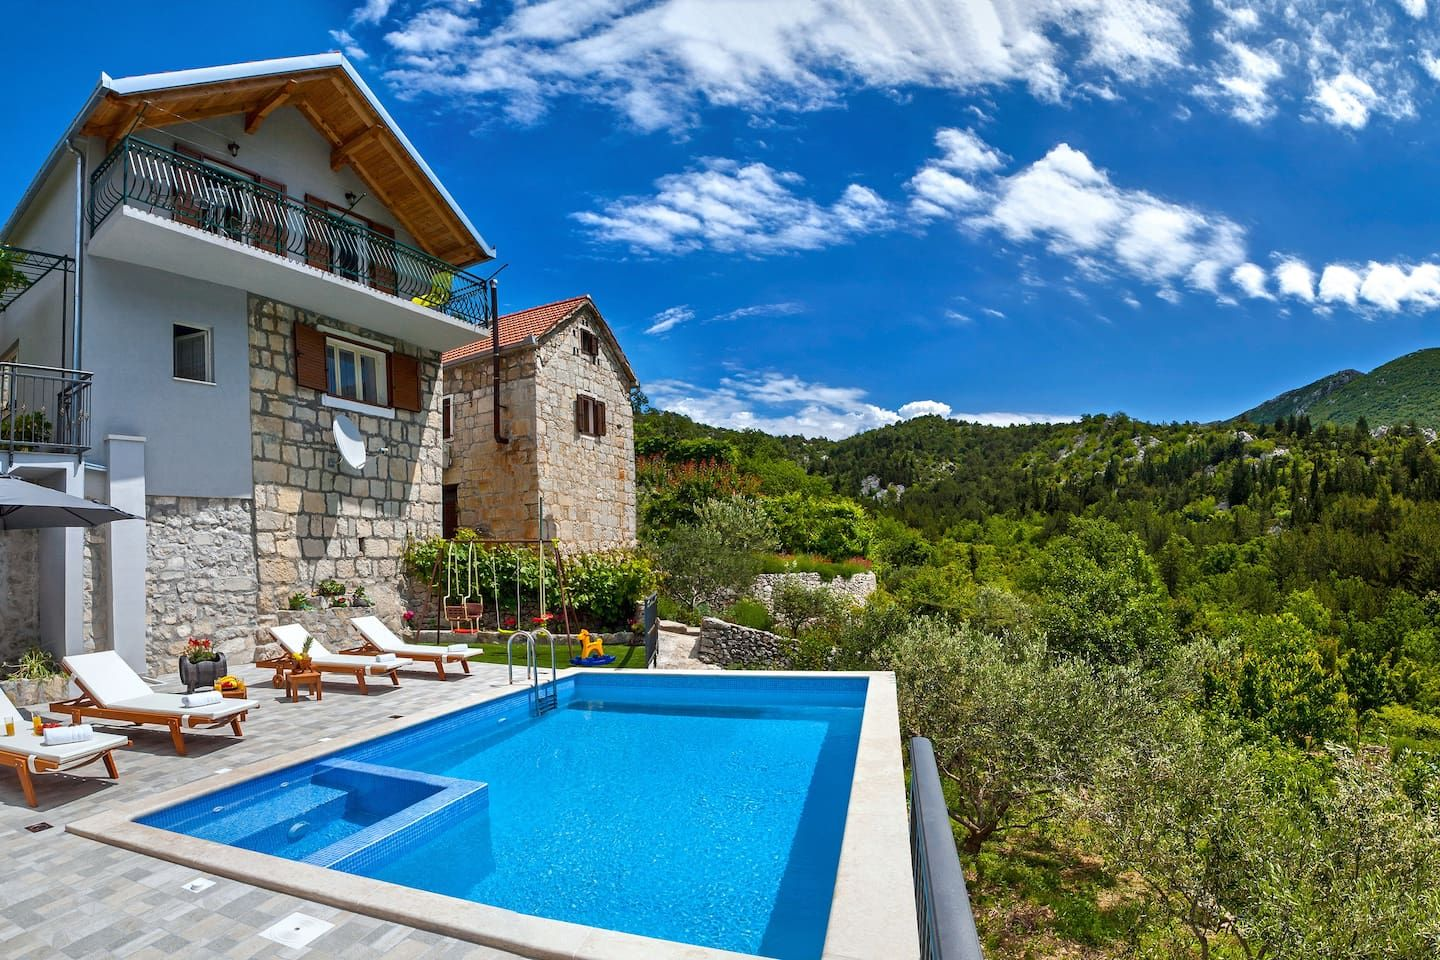 Pool And Jacuzzi Mediterranean House With Heated Pool And Jacuzzi Houses For Rent